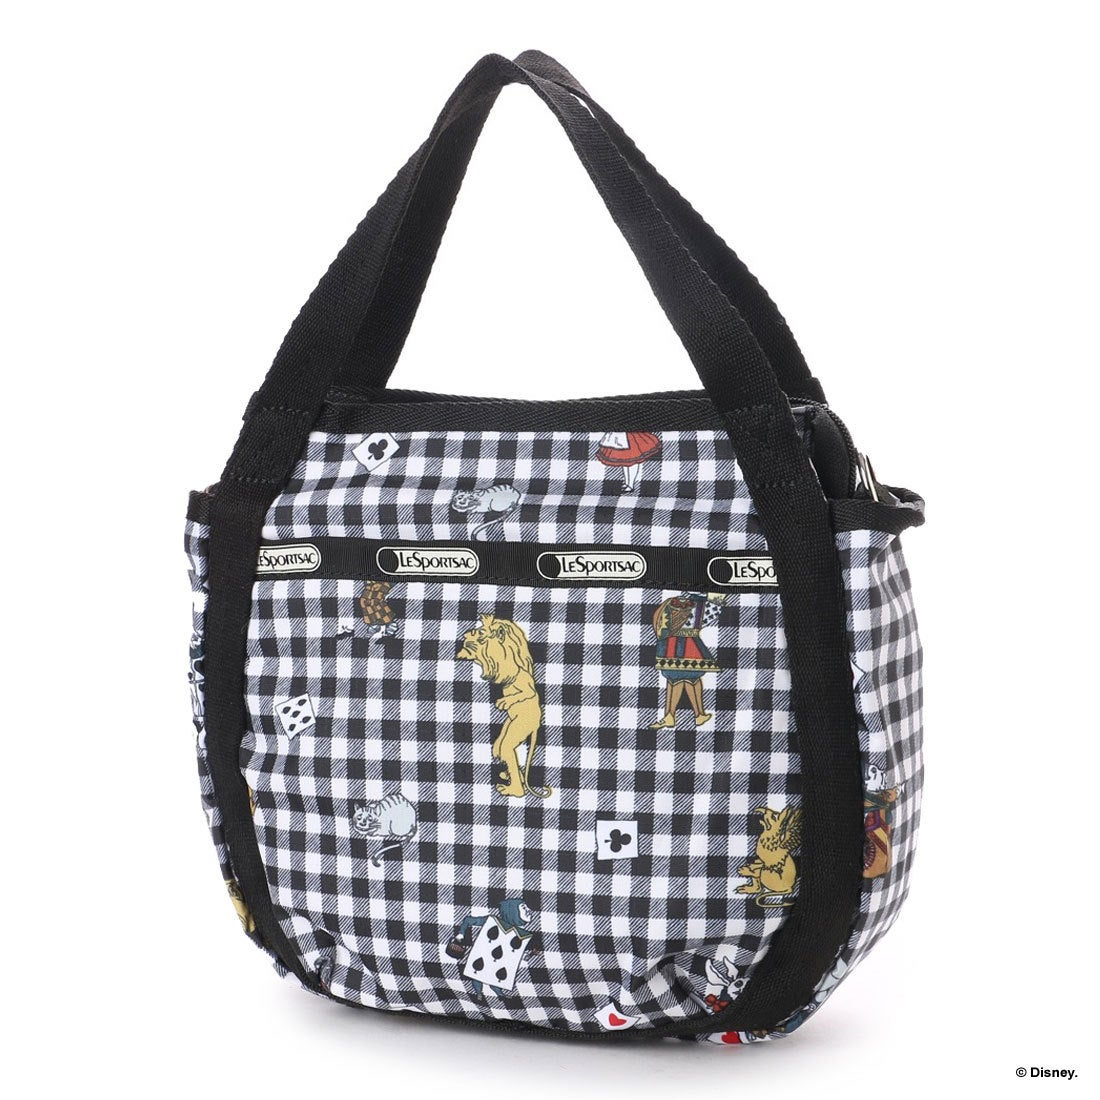 【SALE 29%OFF】レスポートサック LeSportsac SMALL JENNI (CARD GINGHAM) レディース